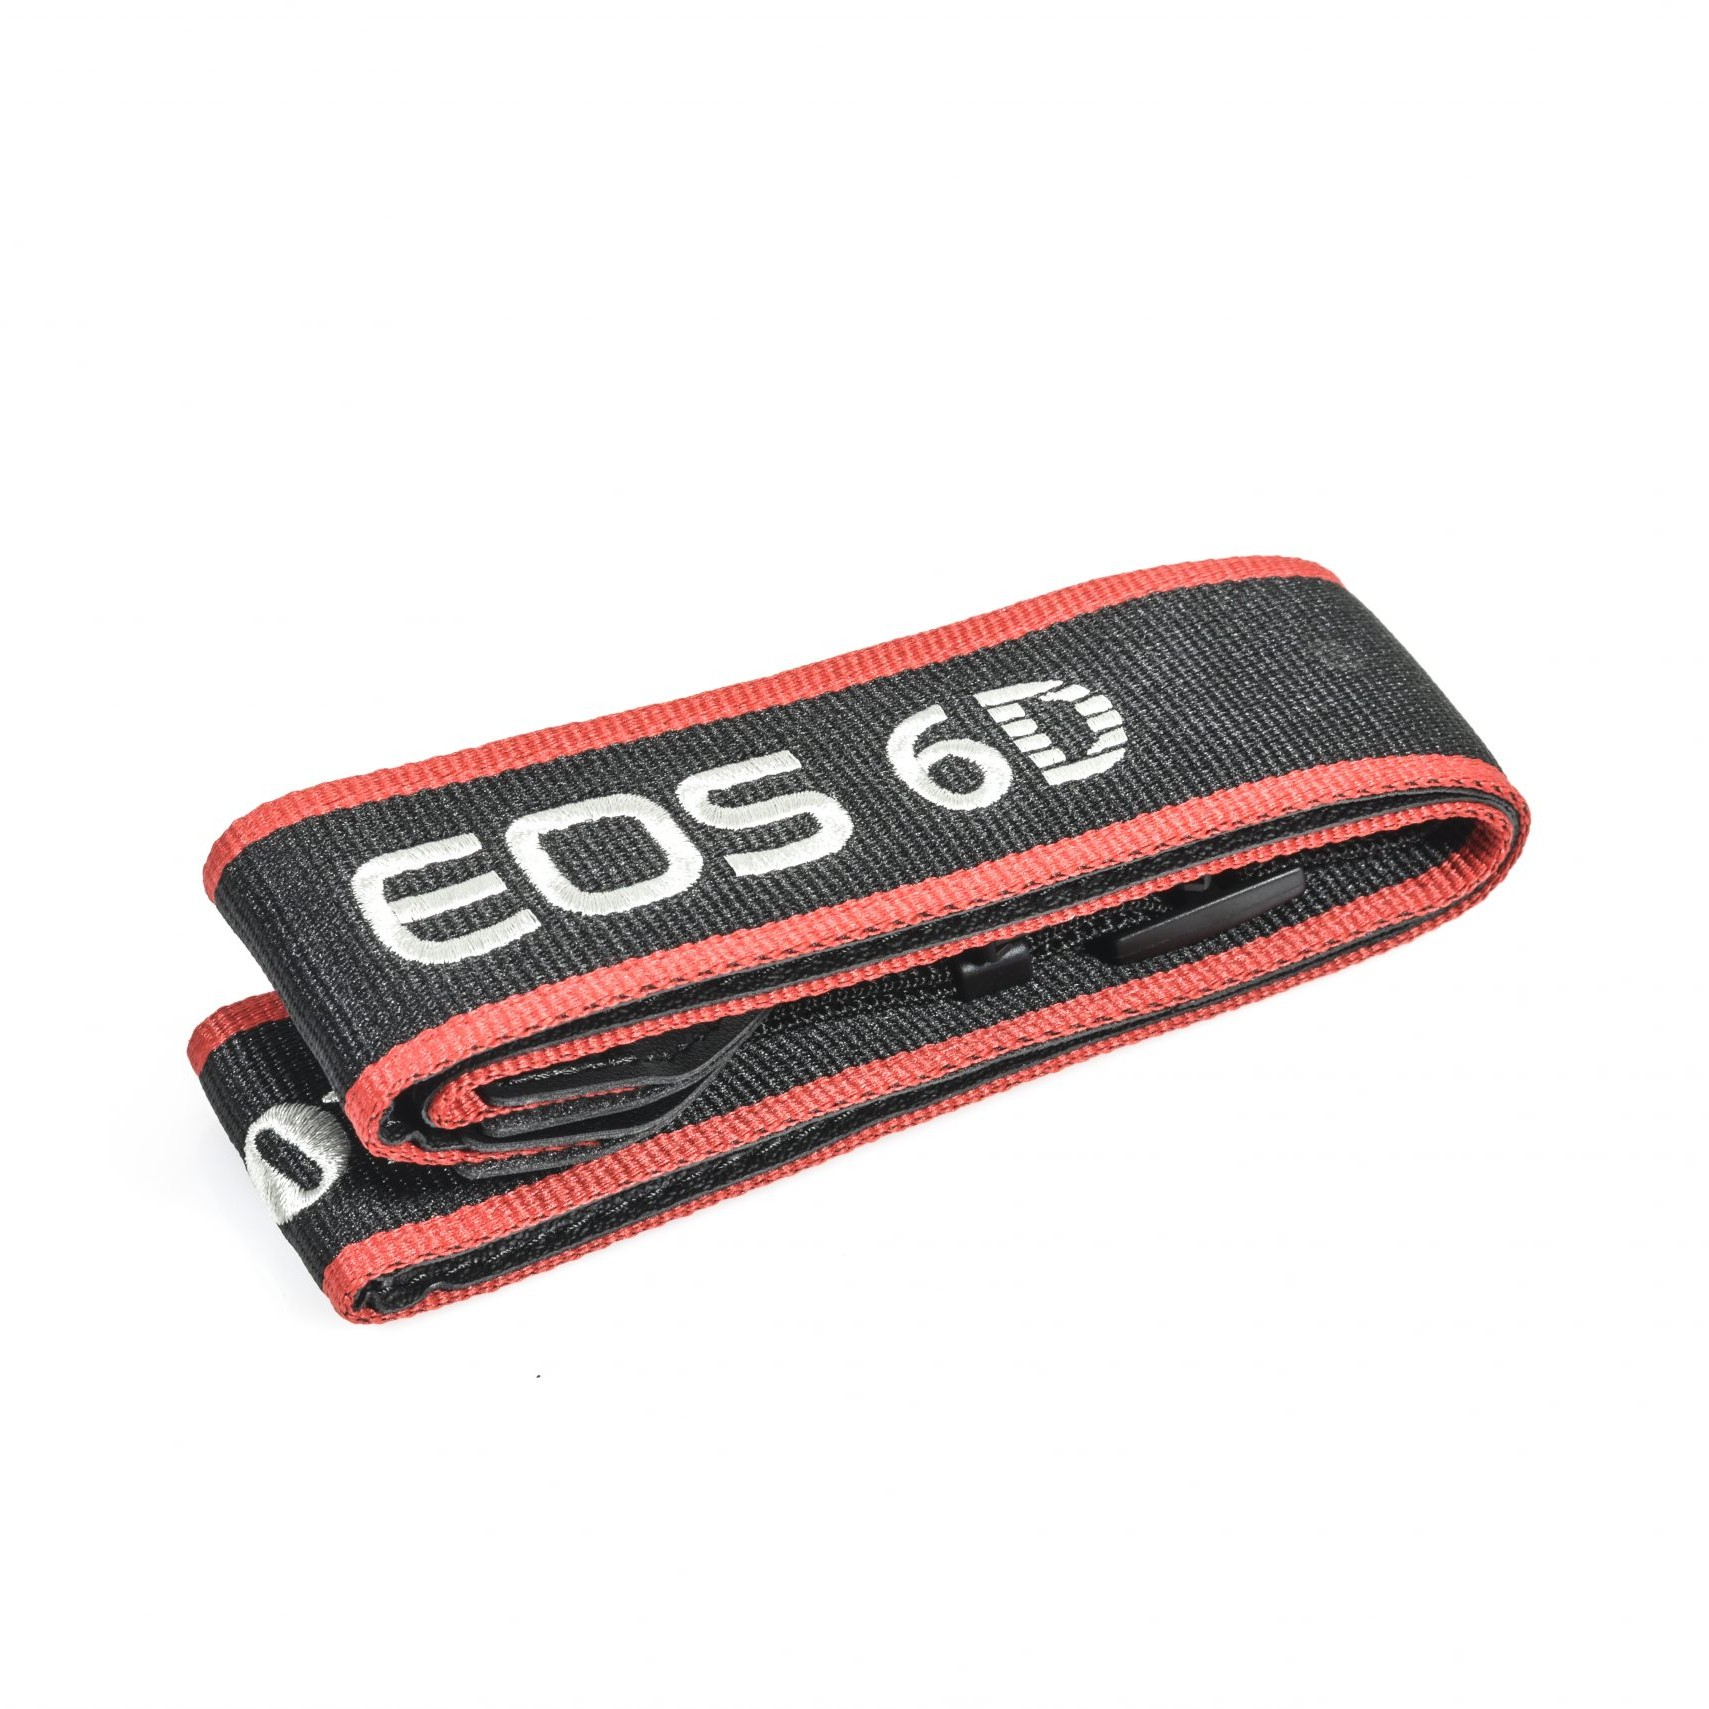 New Canon EOS 6D Camera Strap The South West Collective of Photography Ltd